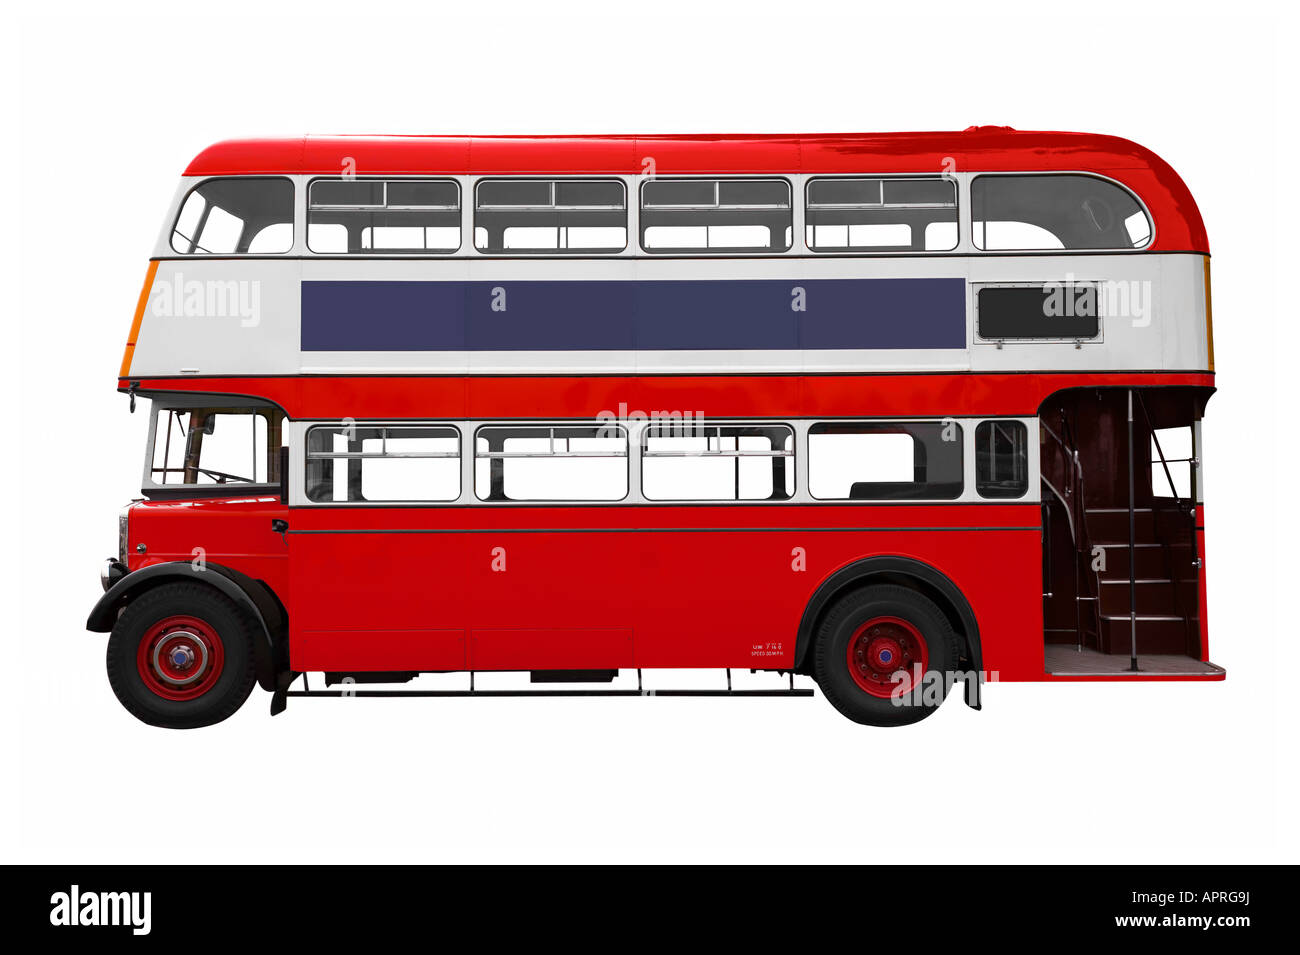 Vintage Red double decker bus isolated on white - Stock Image